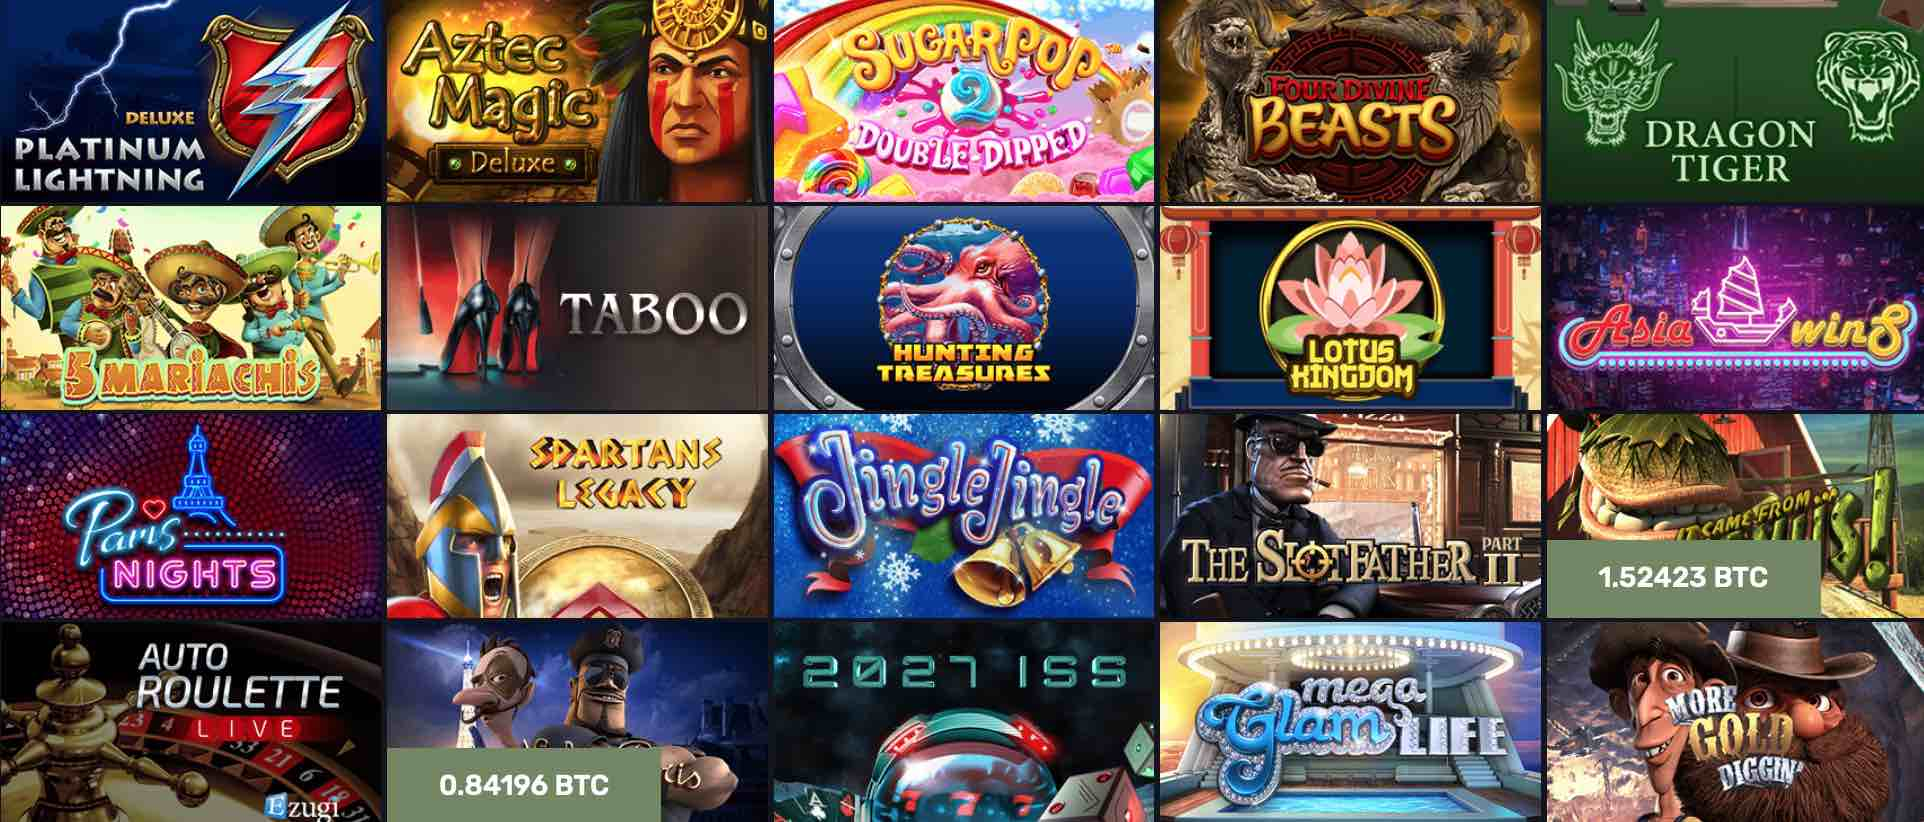 Is vegas bitcoin casino online real